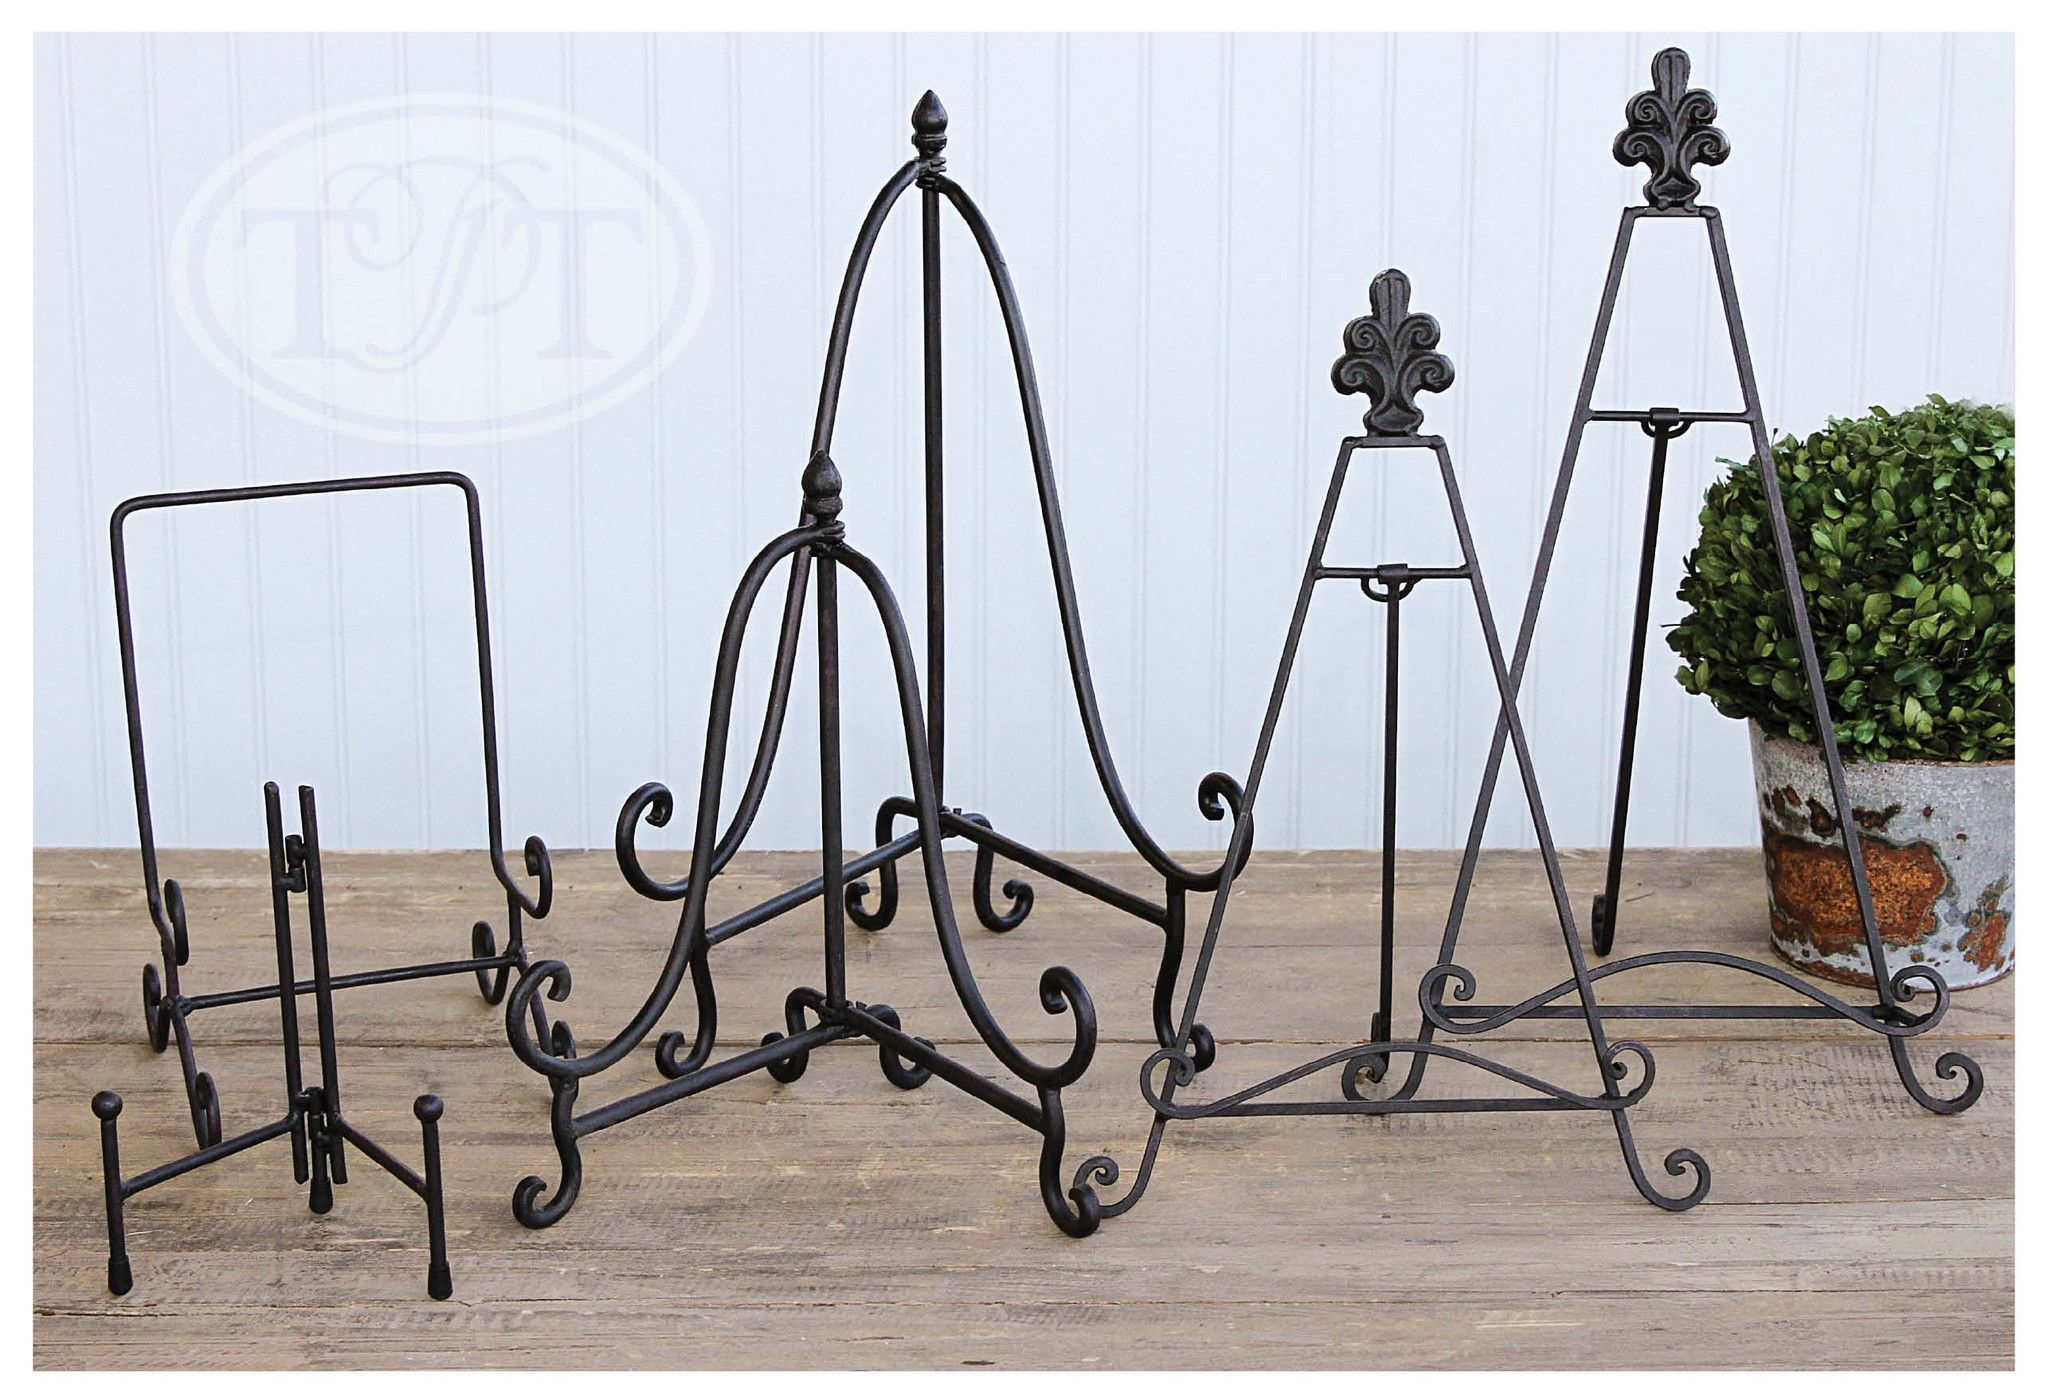 Metal Easels \u0026 Plate Holders! $3.97 & Metal Easels \u0026 Plate Holders! $3.97 | deals and steals | Pinterest ...